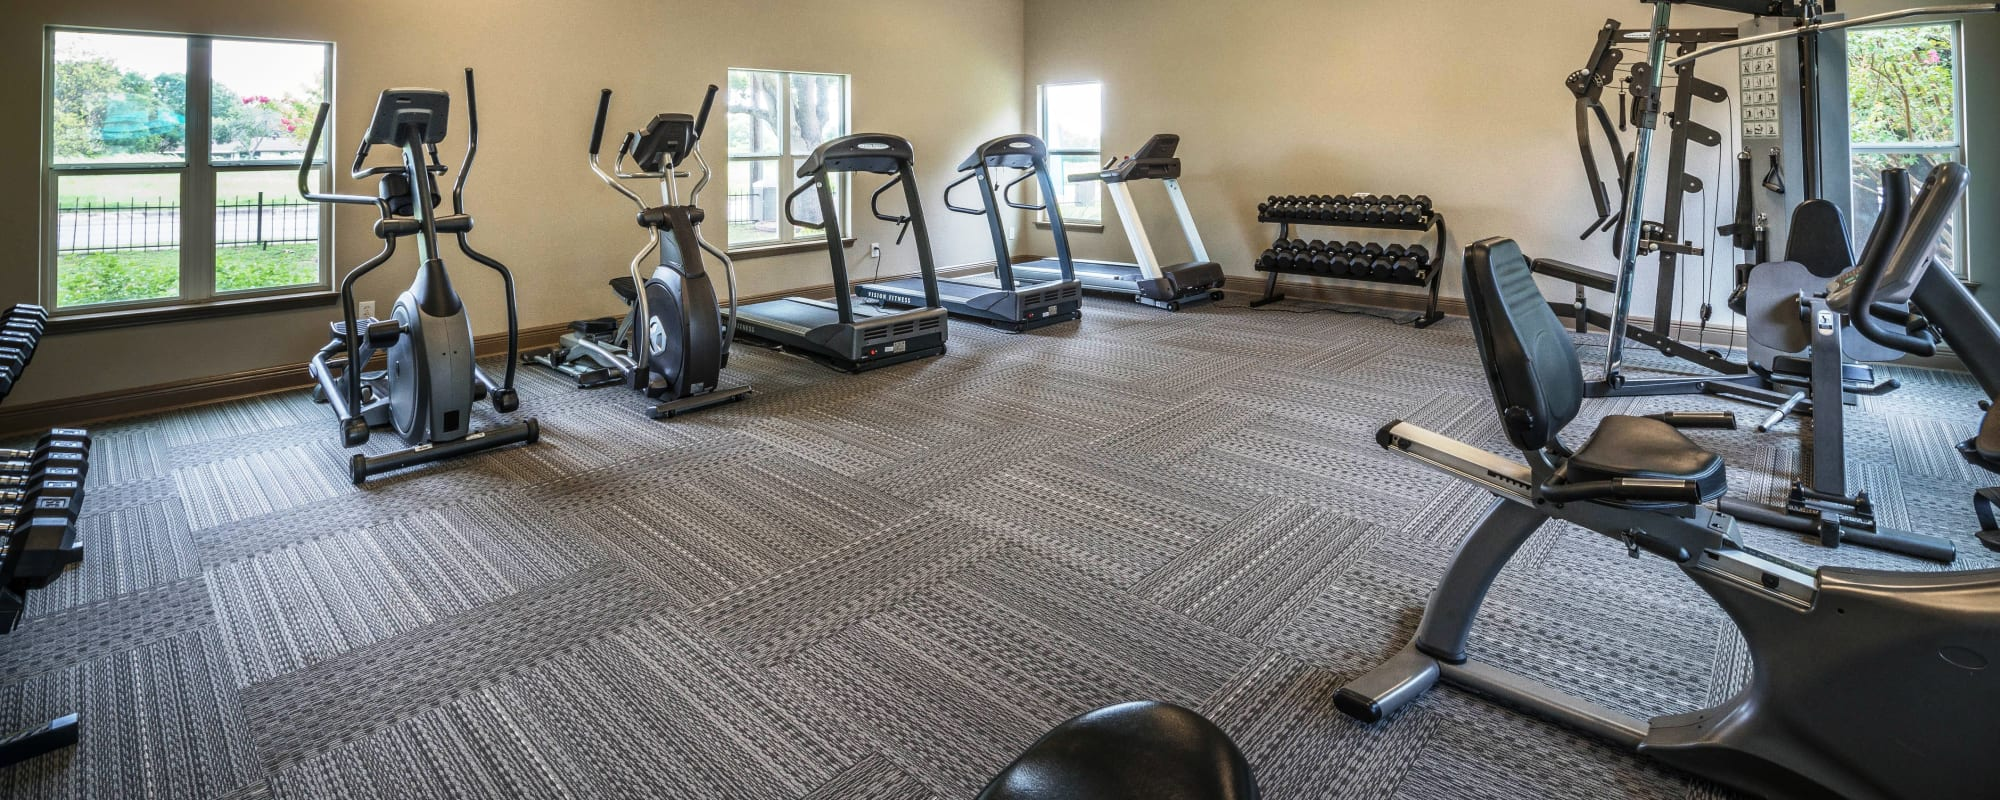 Fitness center at Sedona Canyon in San Antonio, Texas